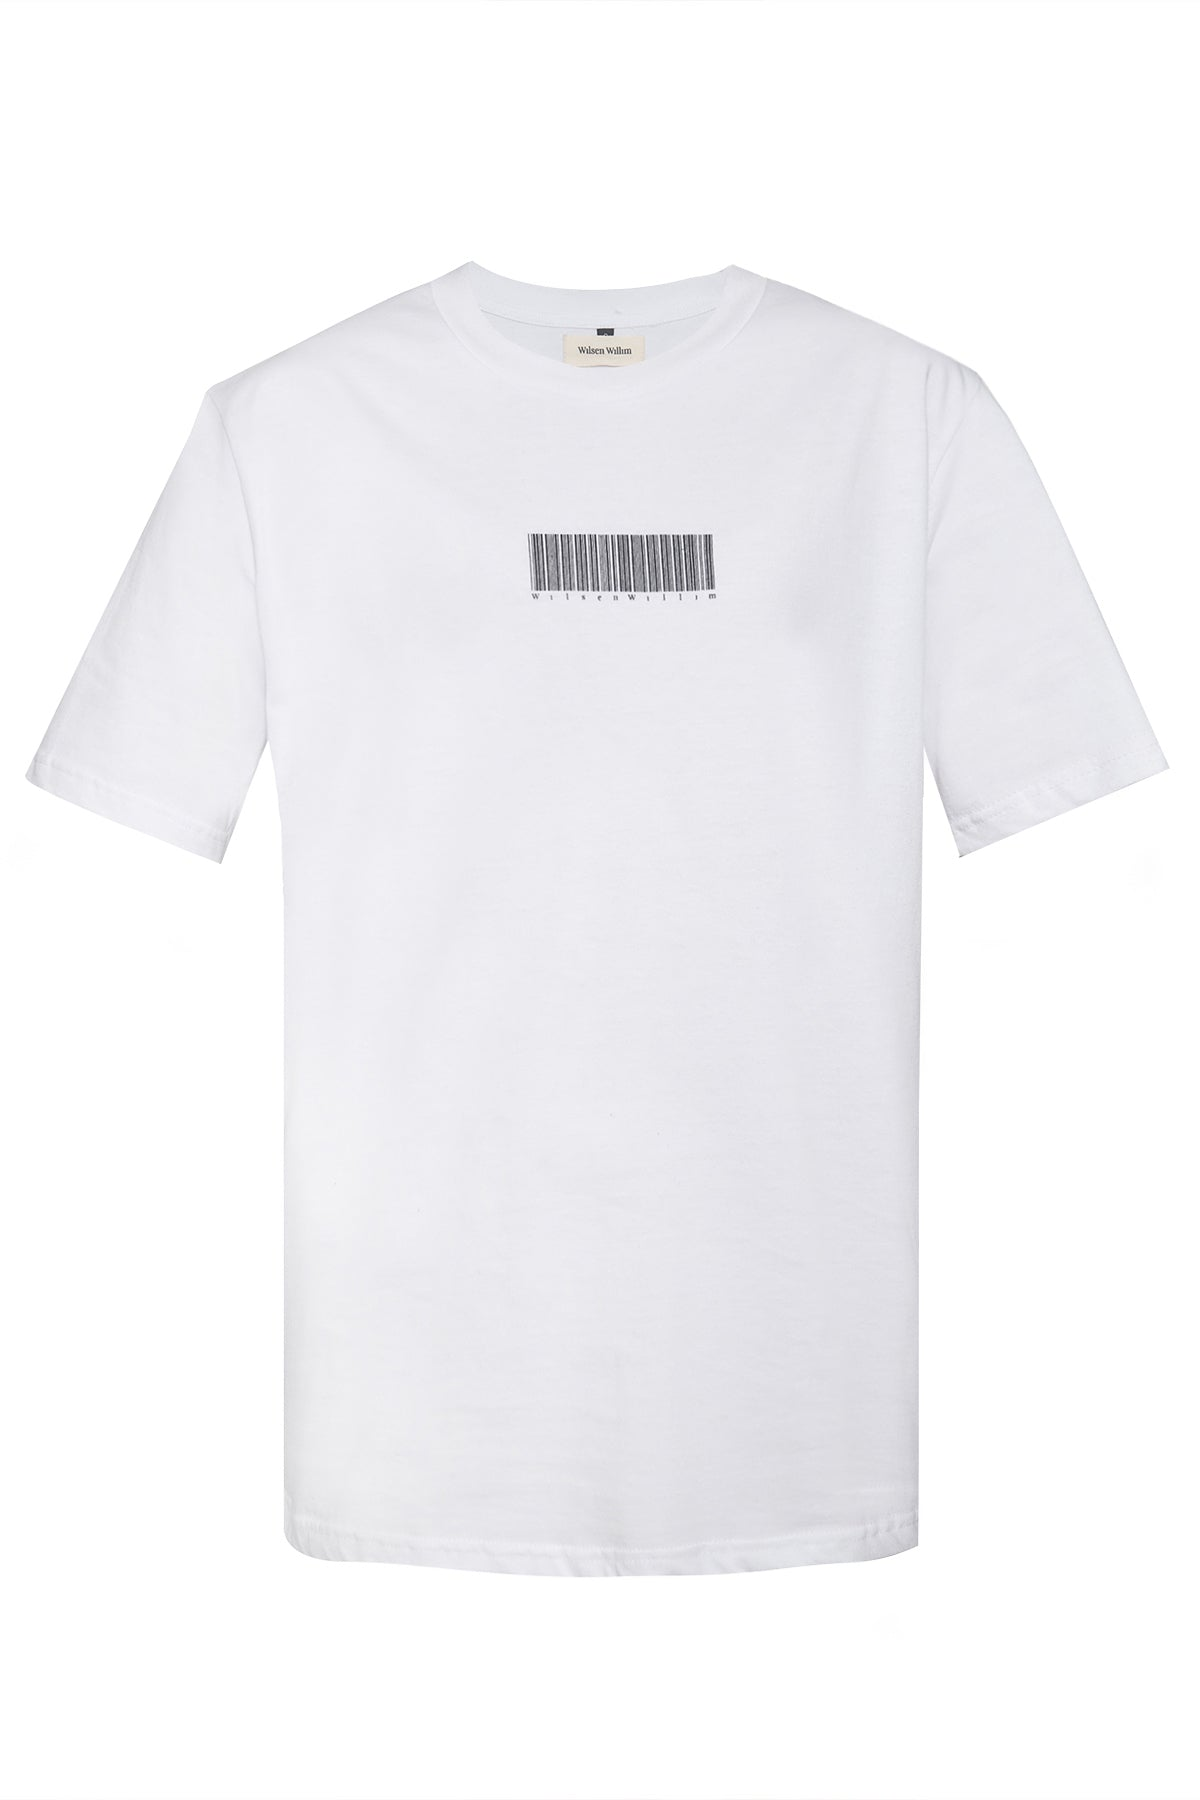 White Short sleeve T-shirt with Barcode